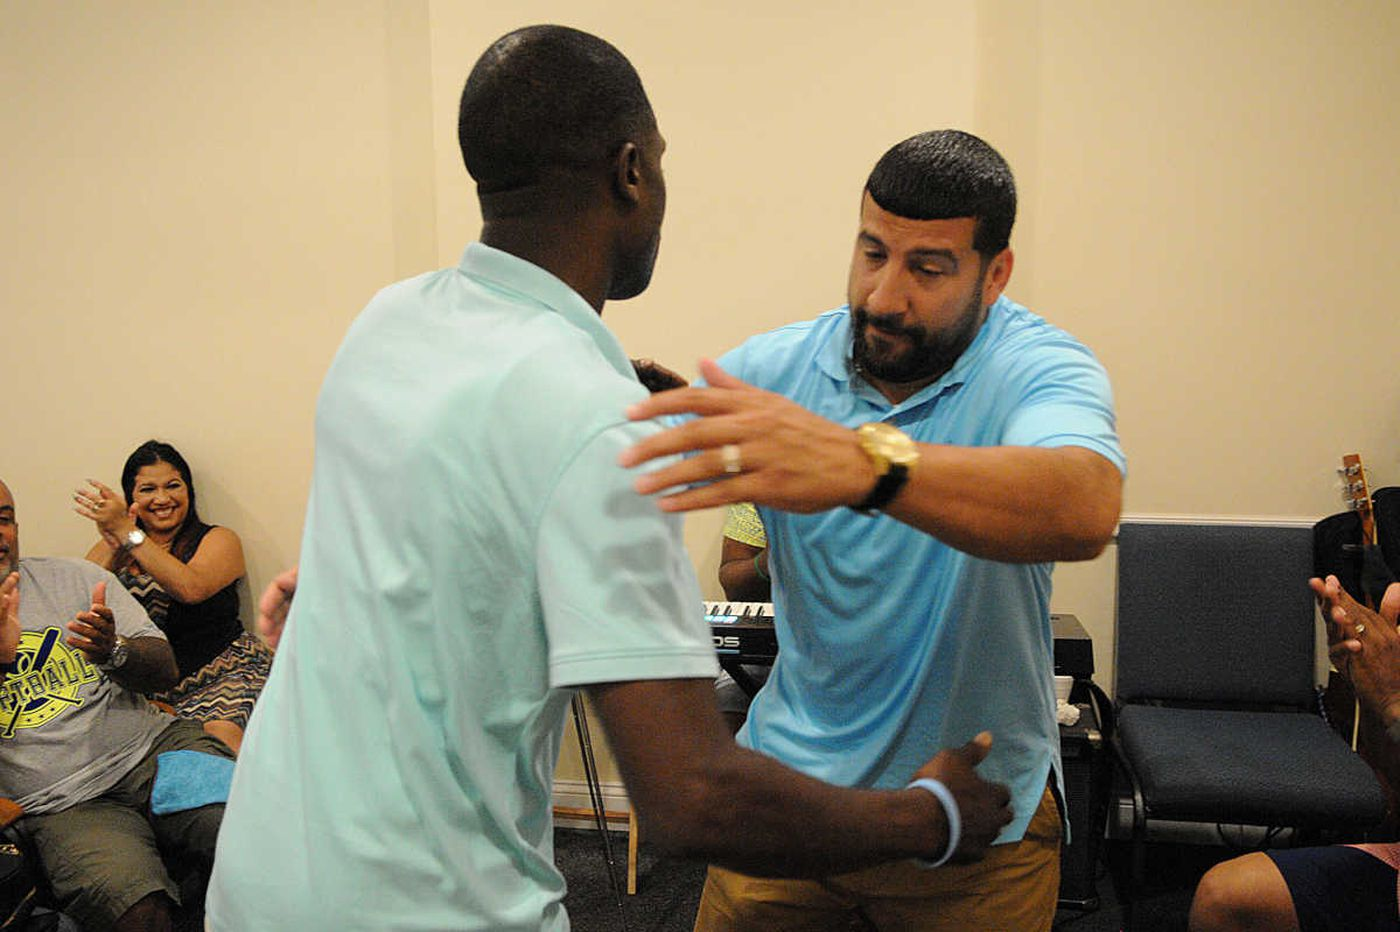 A Fairhill church is redemption central for ex-offenders